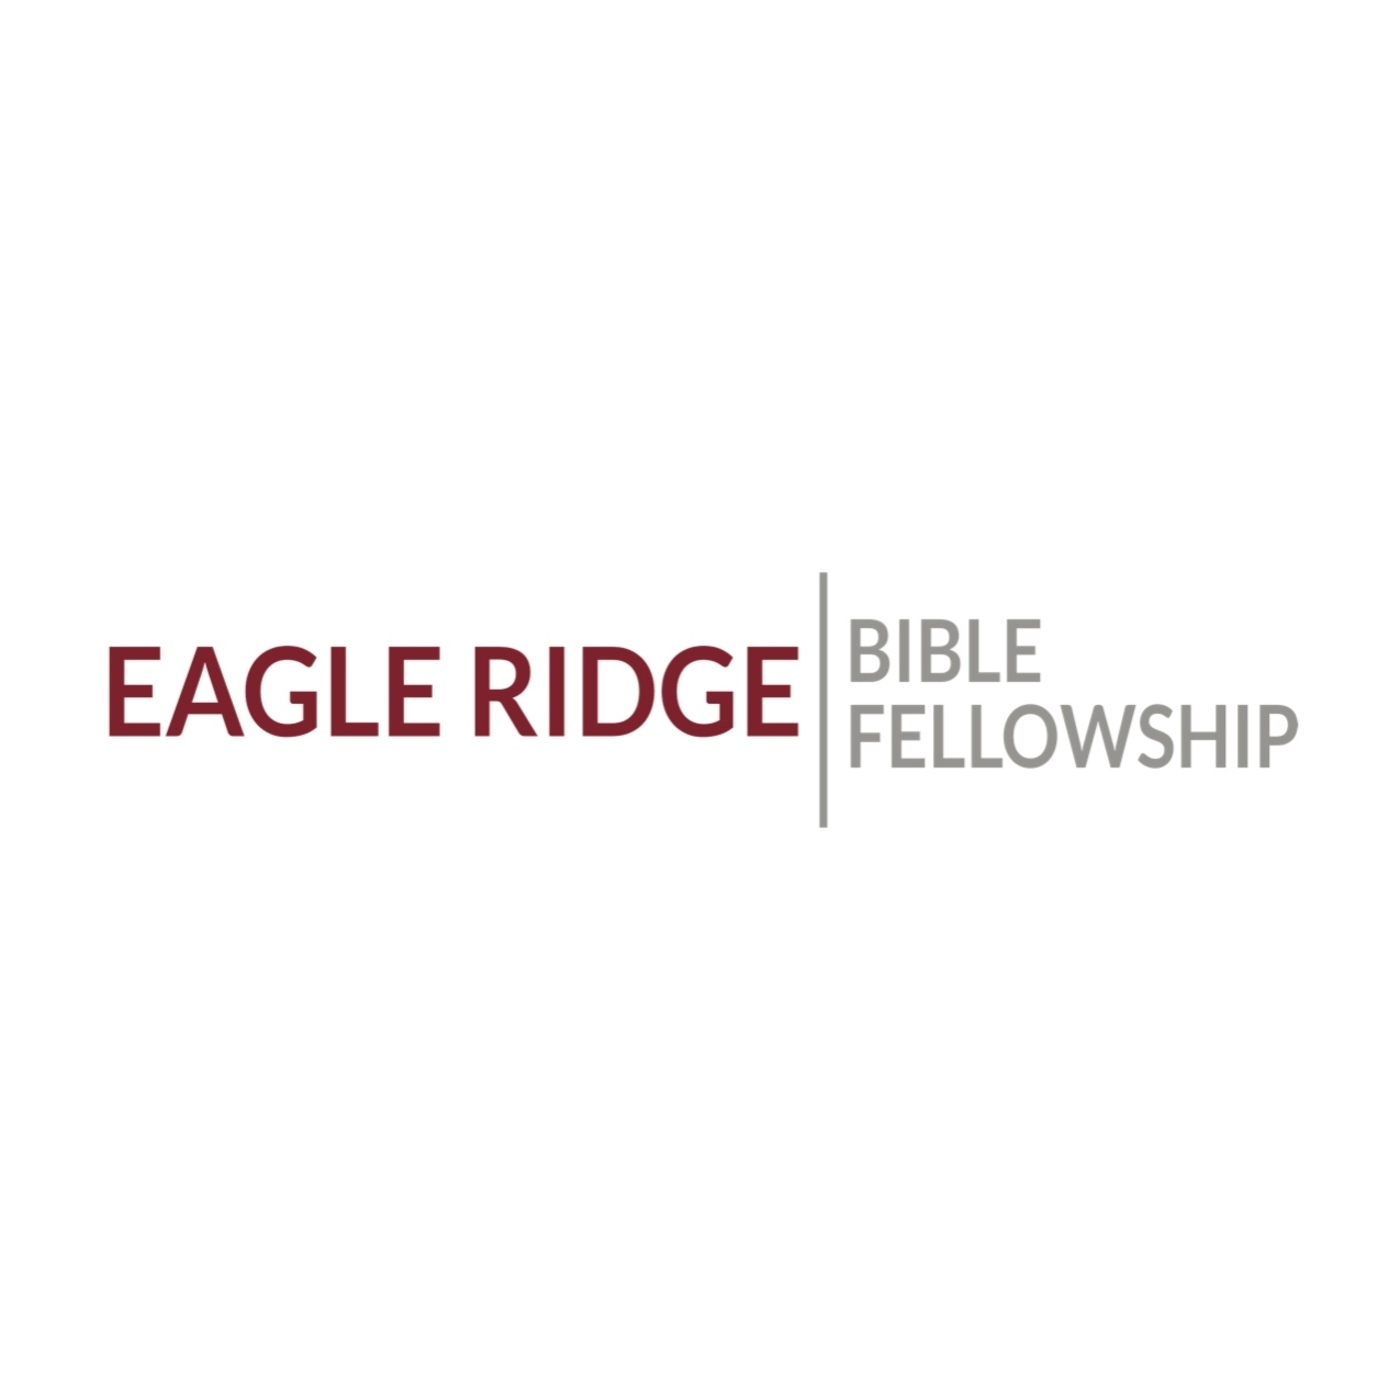 Eagle Ridge Bible Fellowship